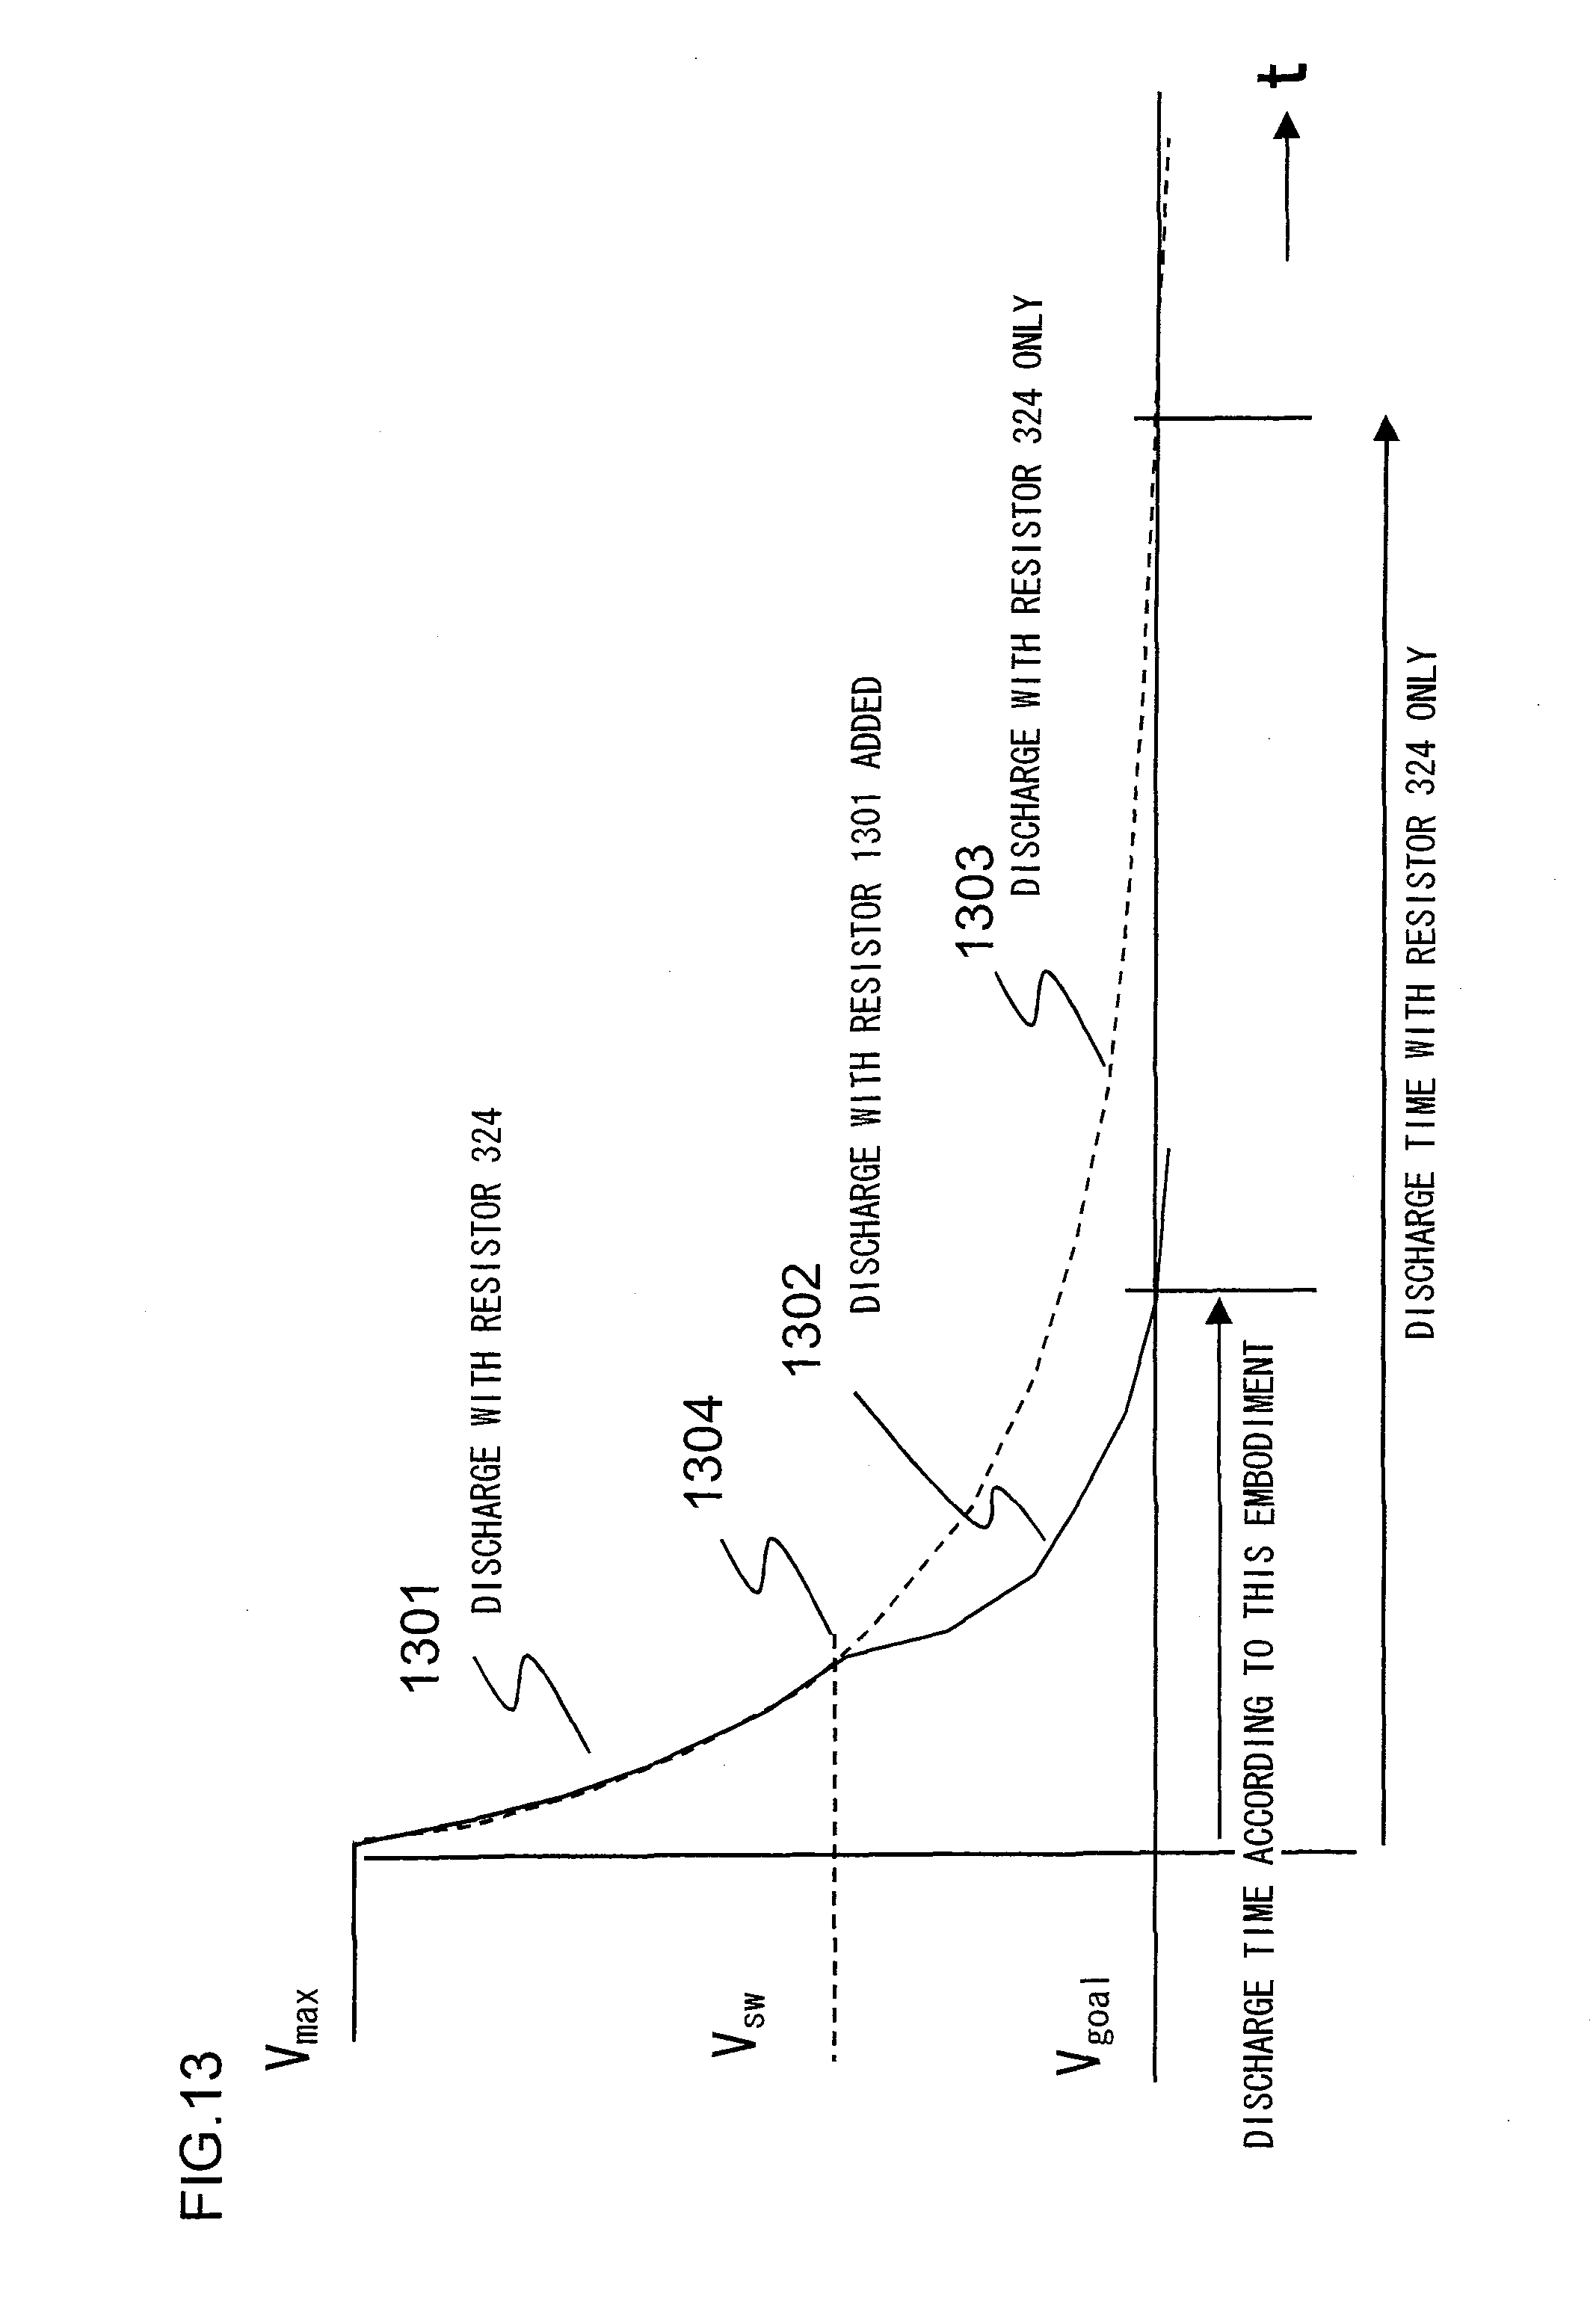 patent us8436590 - discharge circuit for smoothing capacitor of dc power supply